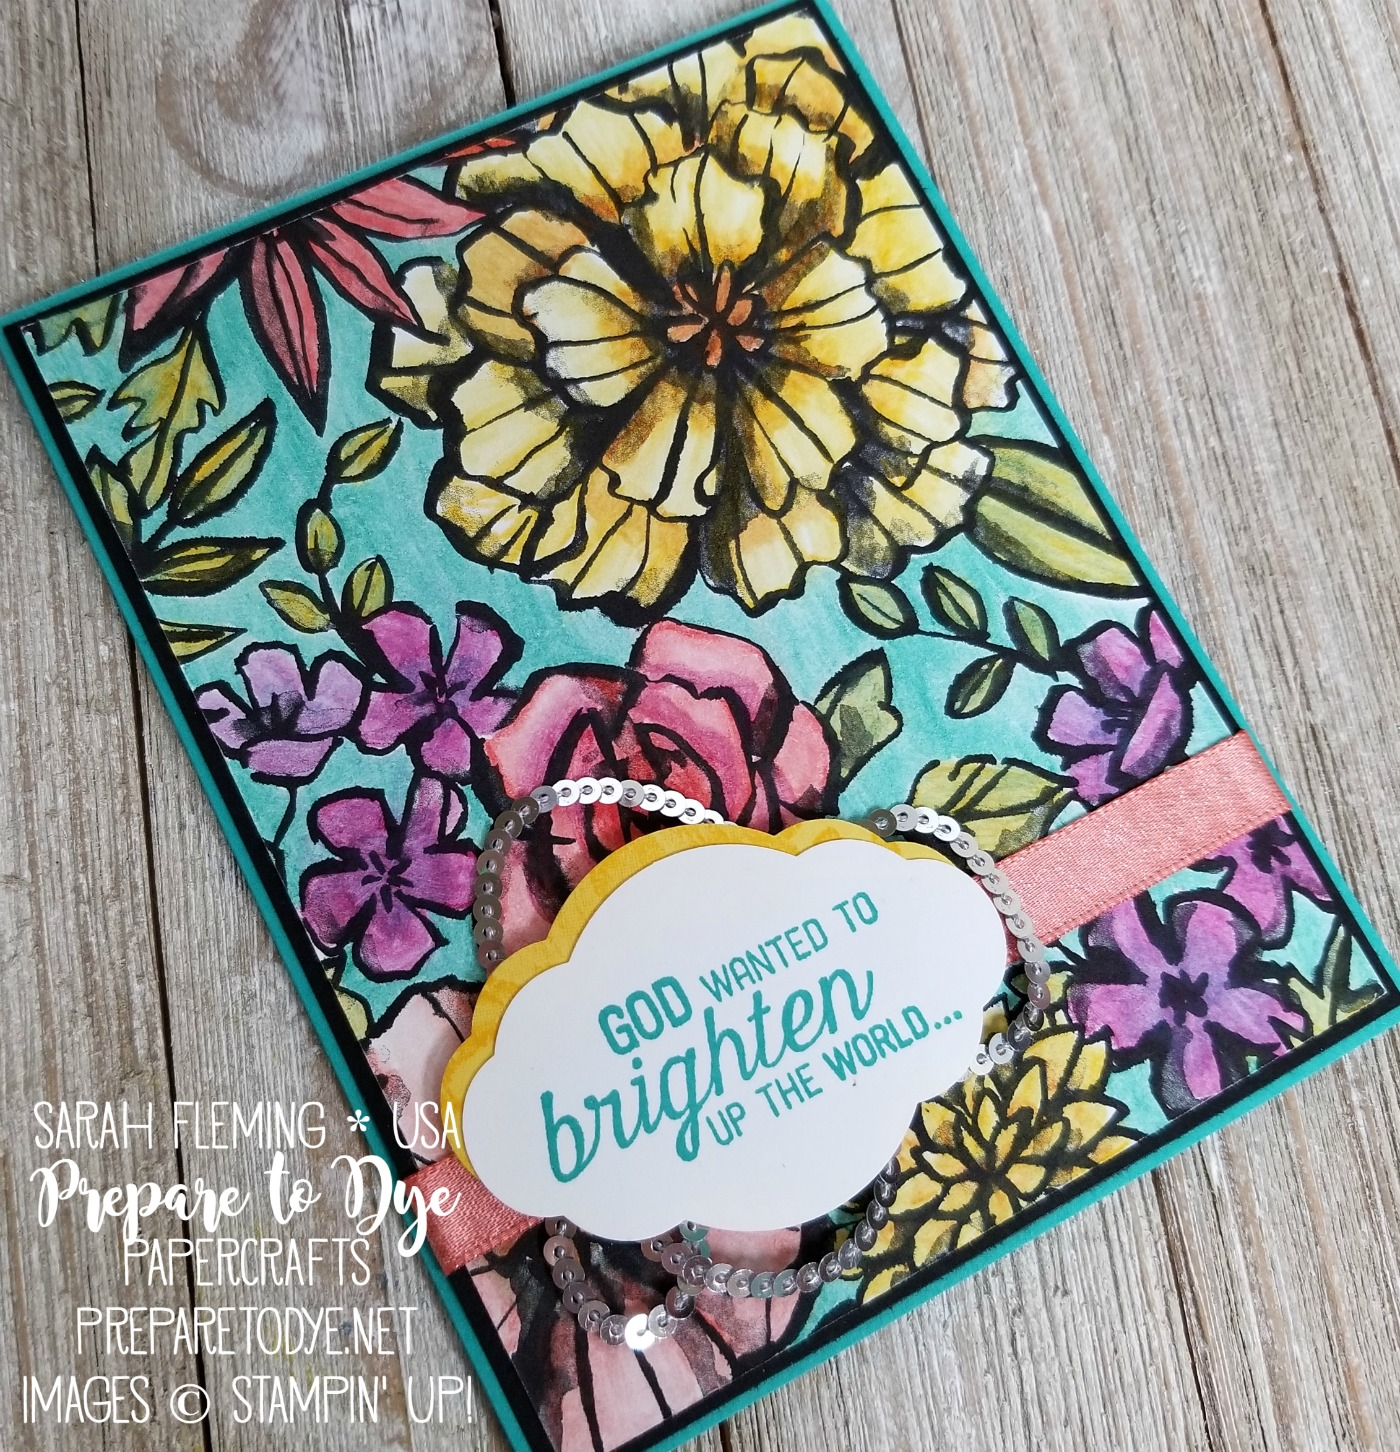 Stampin' Up! Petal Passion designer series paper with Watercolor Pencils coloring, Flourishing Phrases, FREE Sale-A-Bration ribbon with $50 purchase - Sarah Fleming - Prepare to Dye Papercrafts